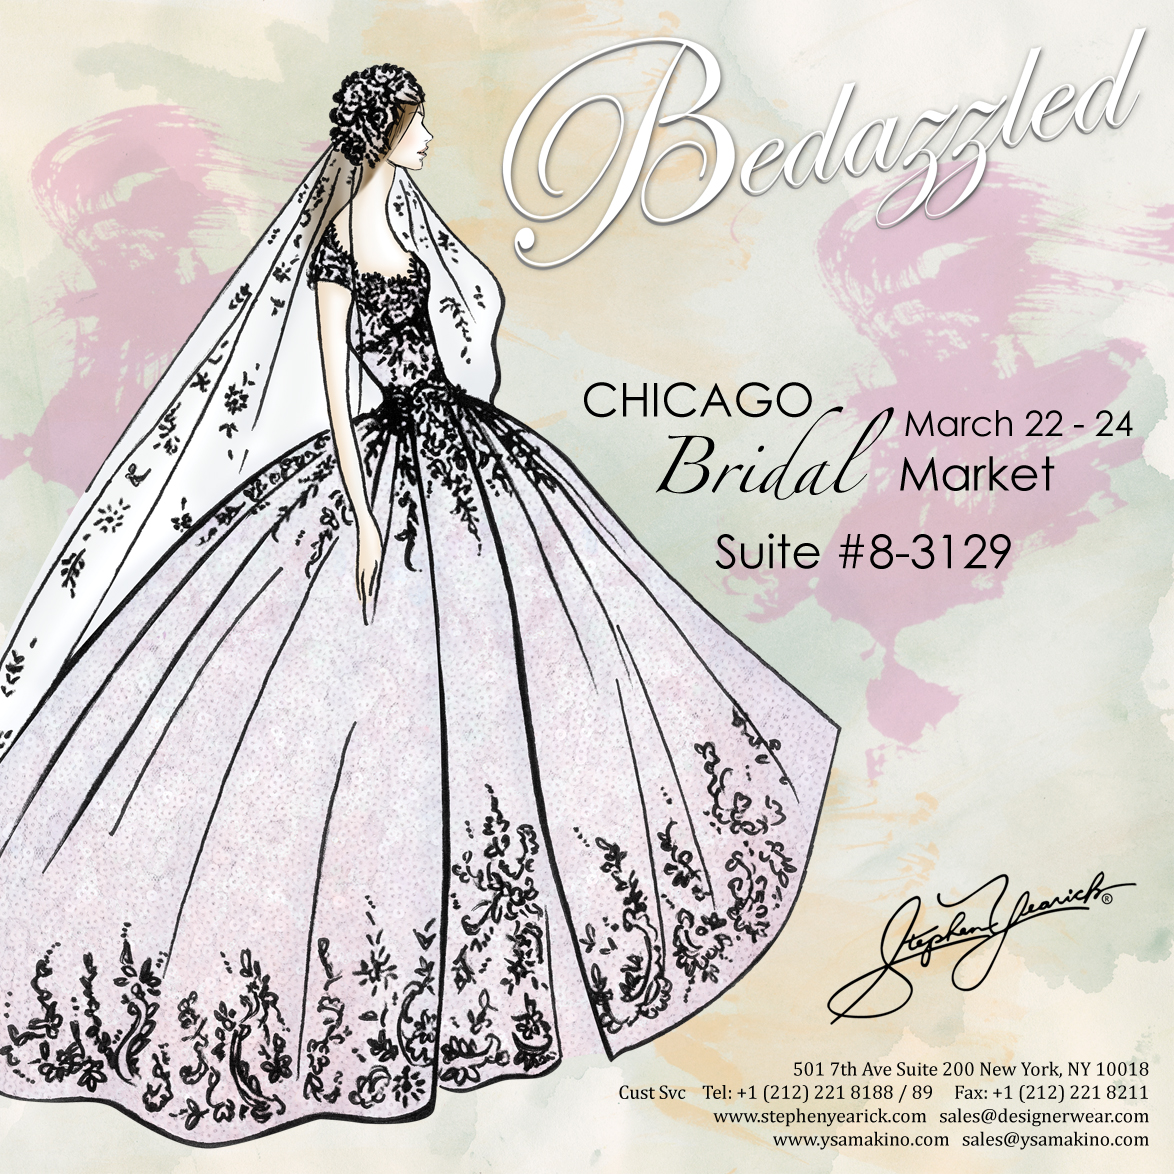 Chicago Bridal Market